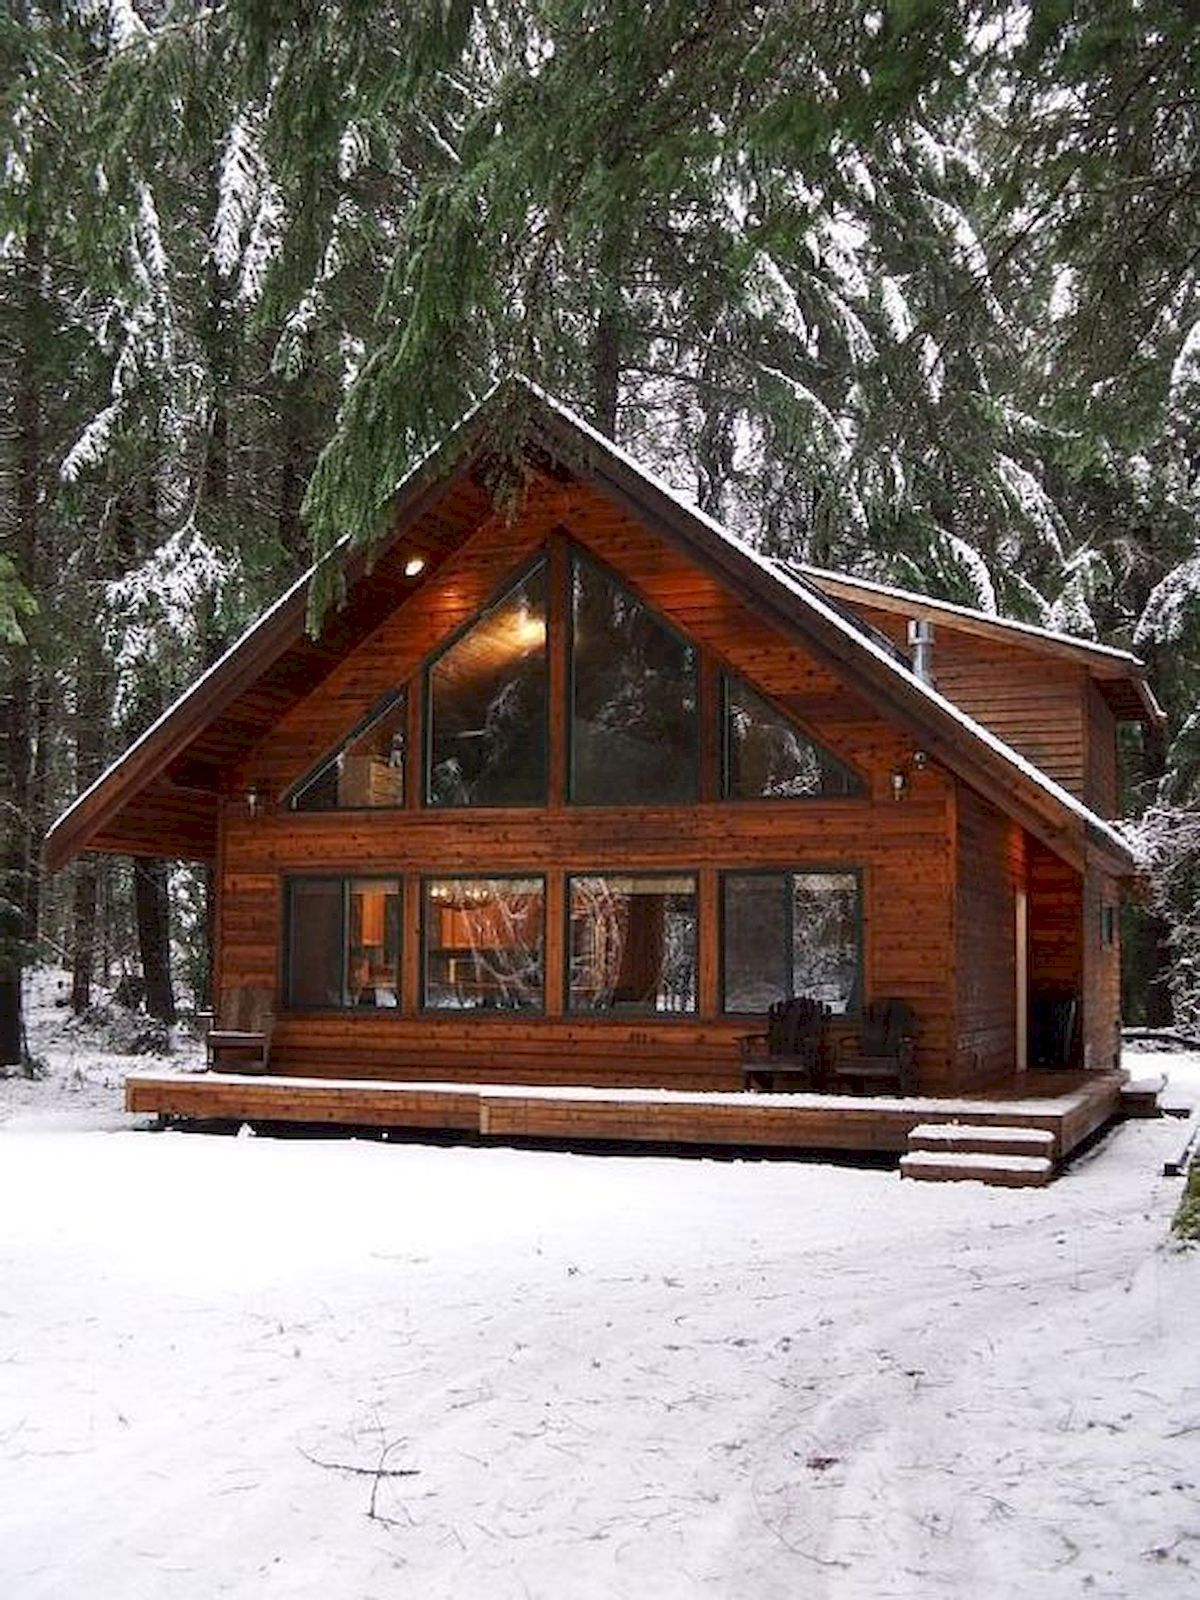 70 Fantastic Small Log Cabin Homes Design Ideas #smallhomes